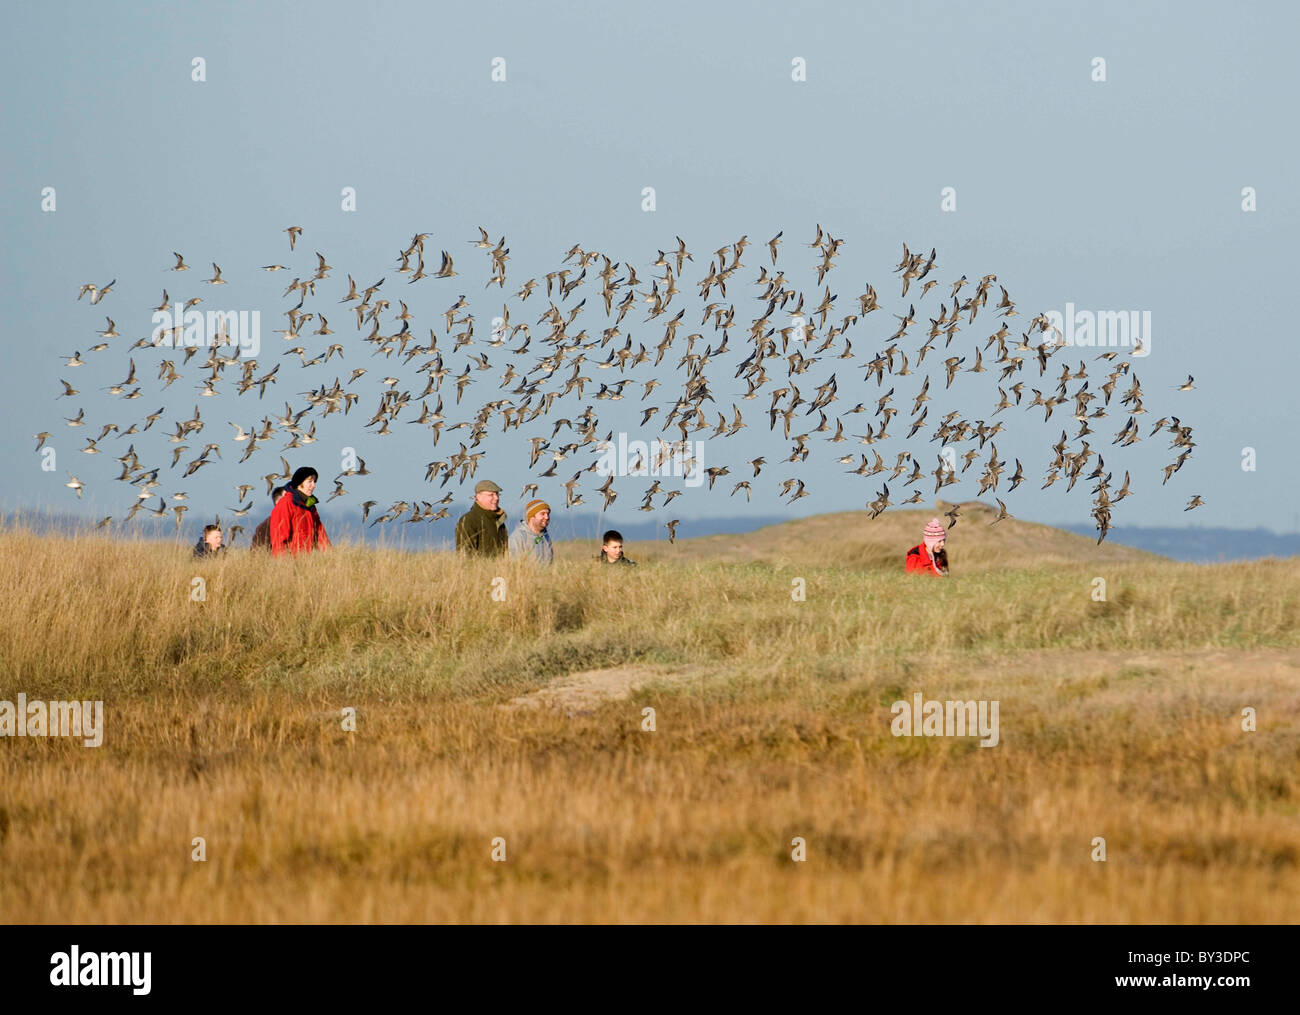 FLOCK OF KNOT FLY OVER THE HEADS OF A FAMILY WALKING ON THE DUNES.Calidris canutus. French: Bécasseau maubèche - Stock Image